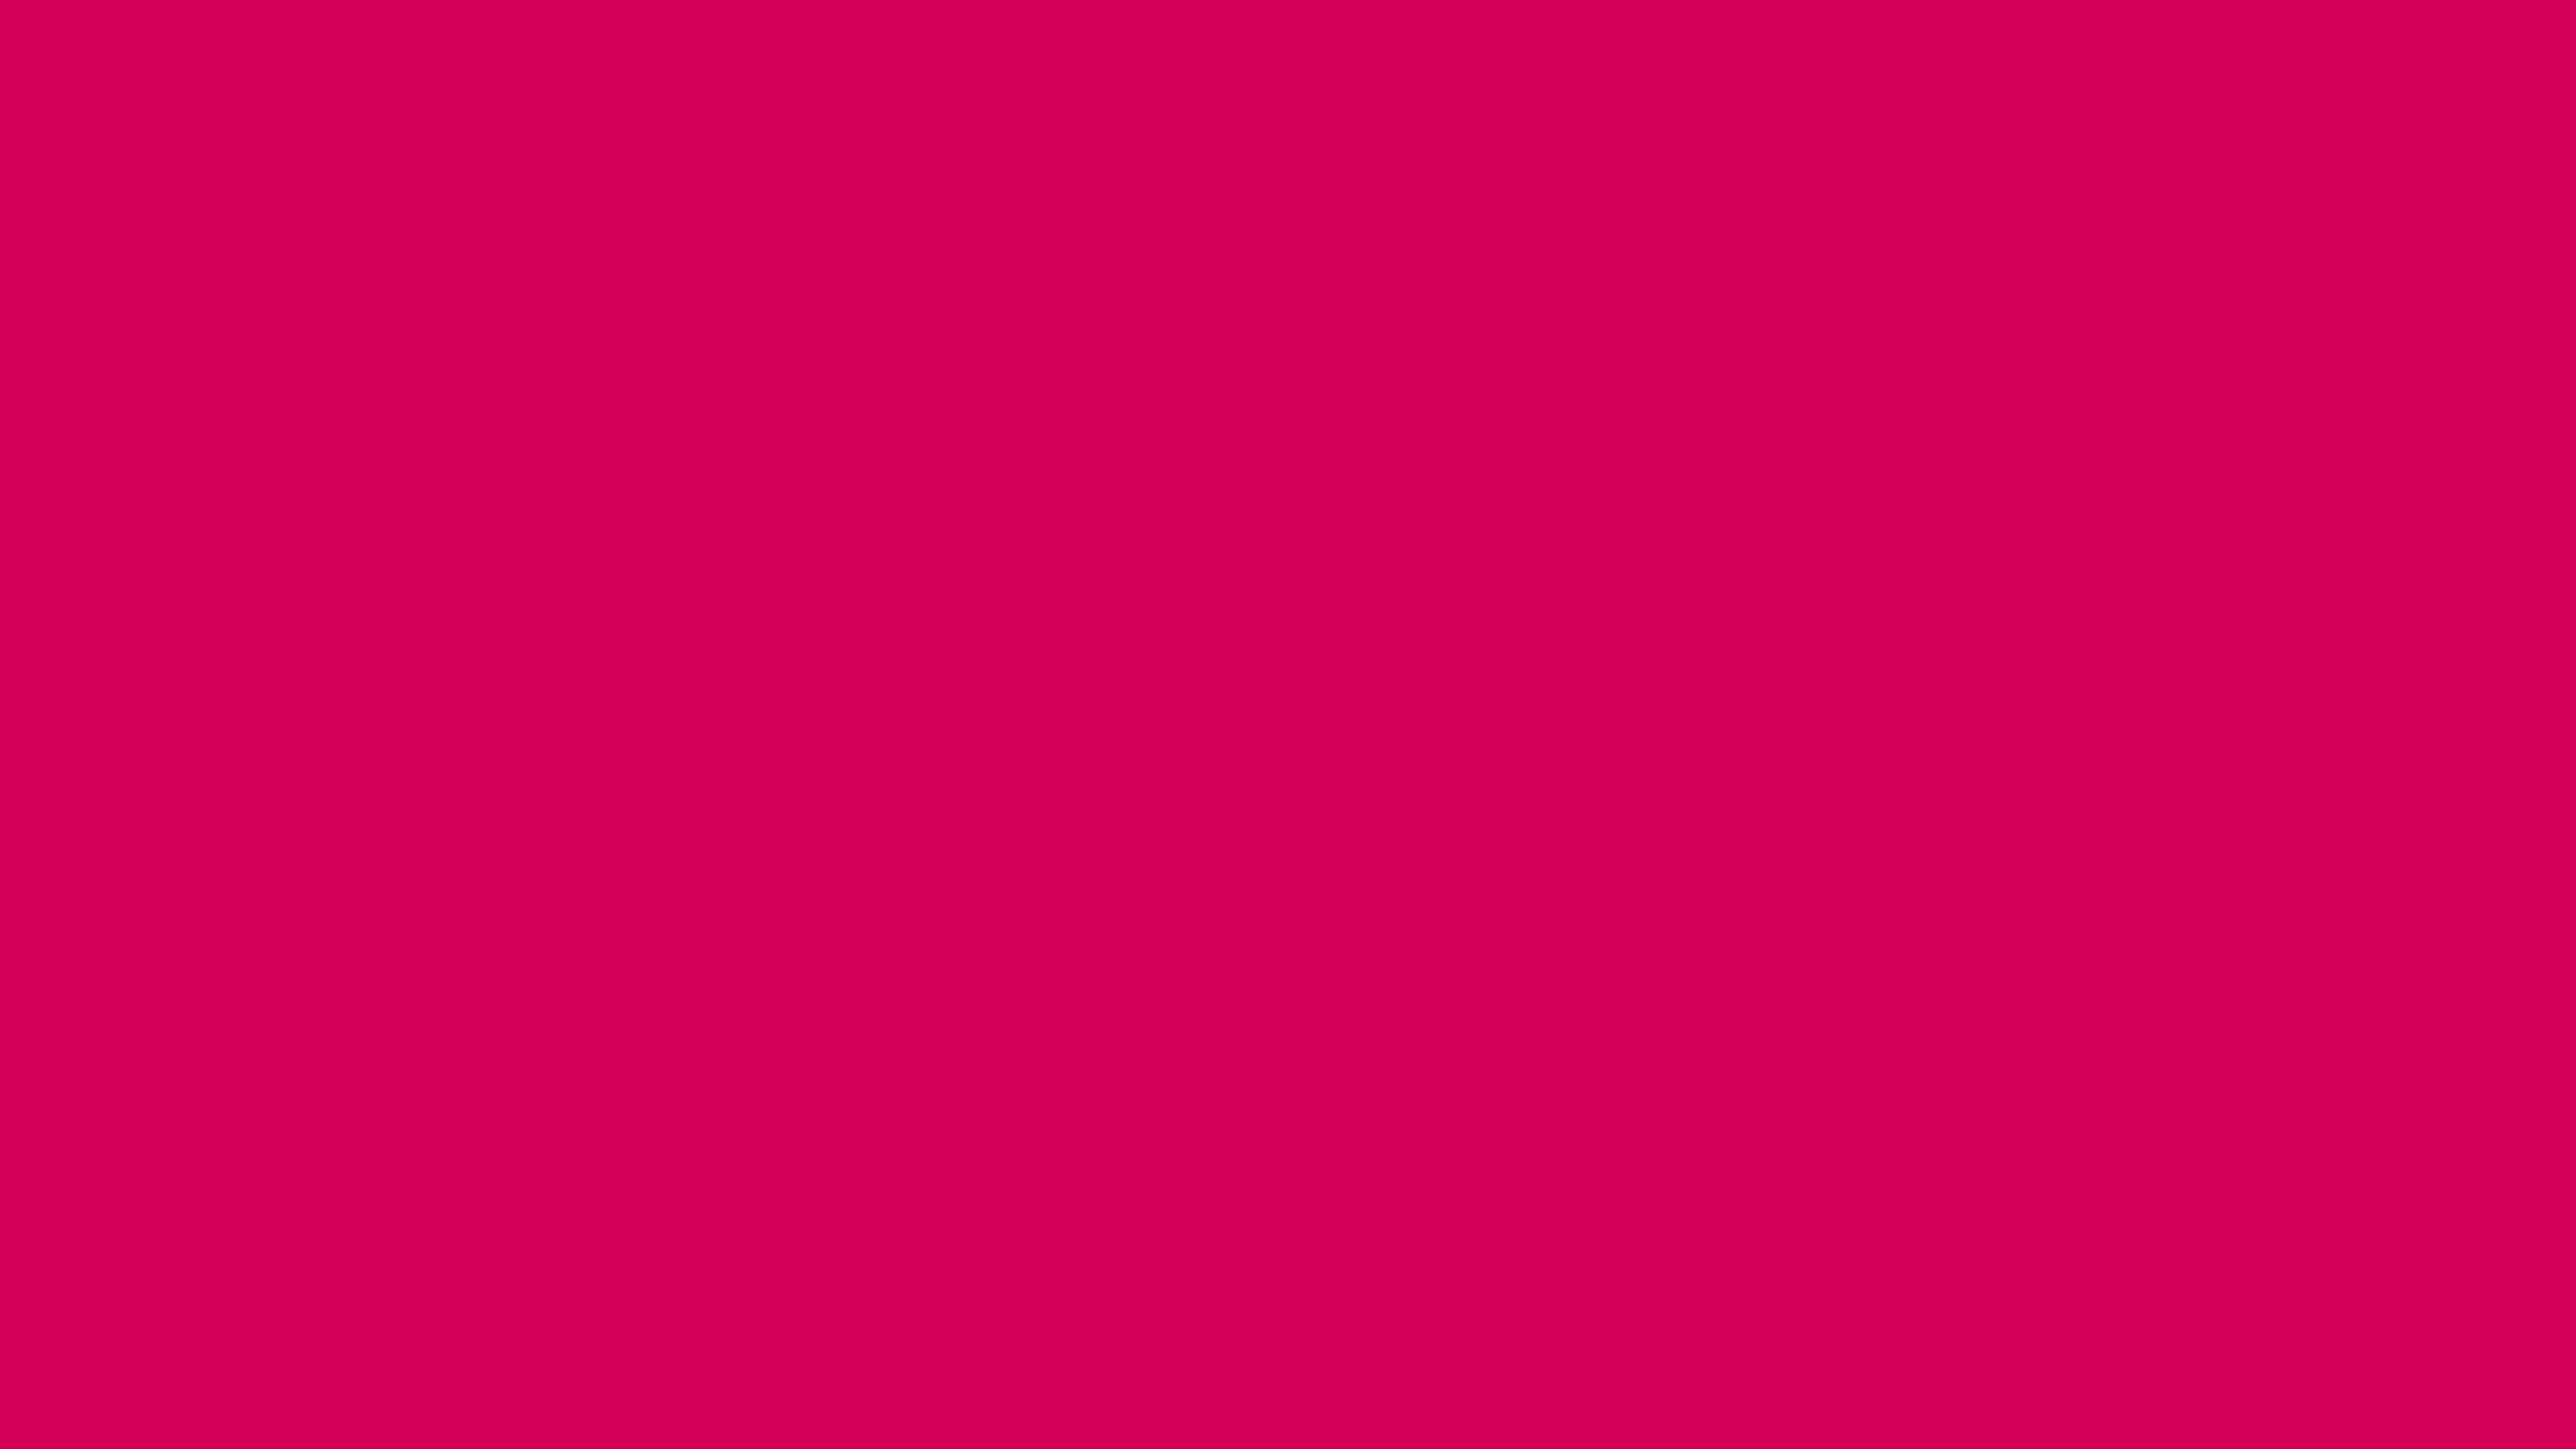 5120x2880 Rubine Red Solid Color Background